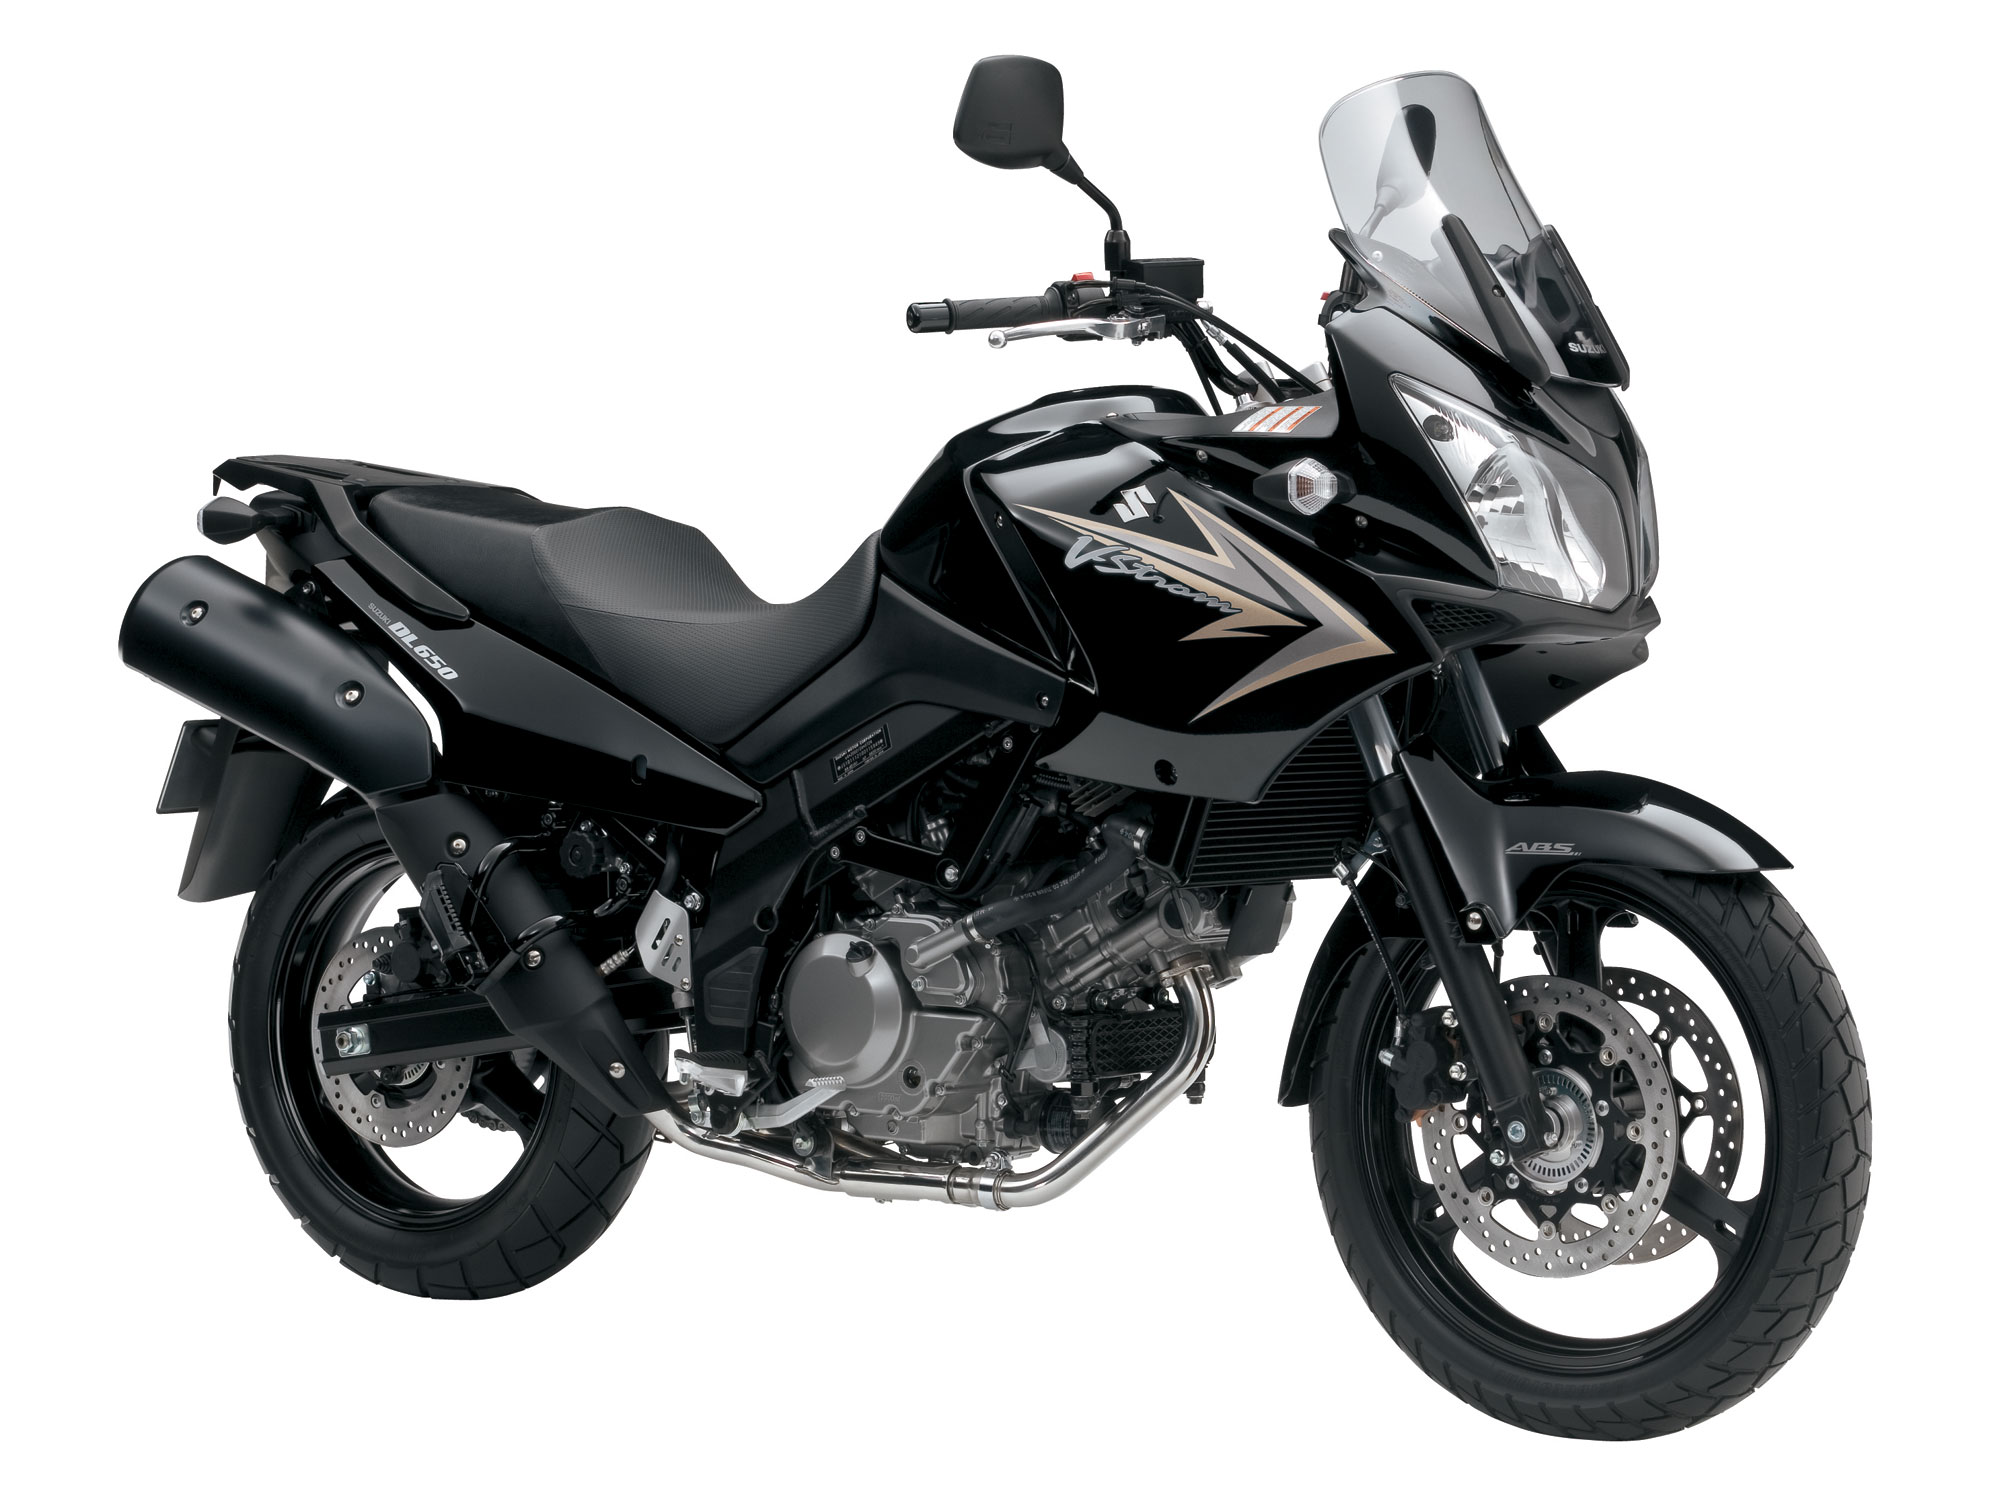 suzuki dl650a v strom 650 abs specs 2010 2011. Black Bedroom Furniture Sets. Home Design Ideas